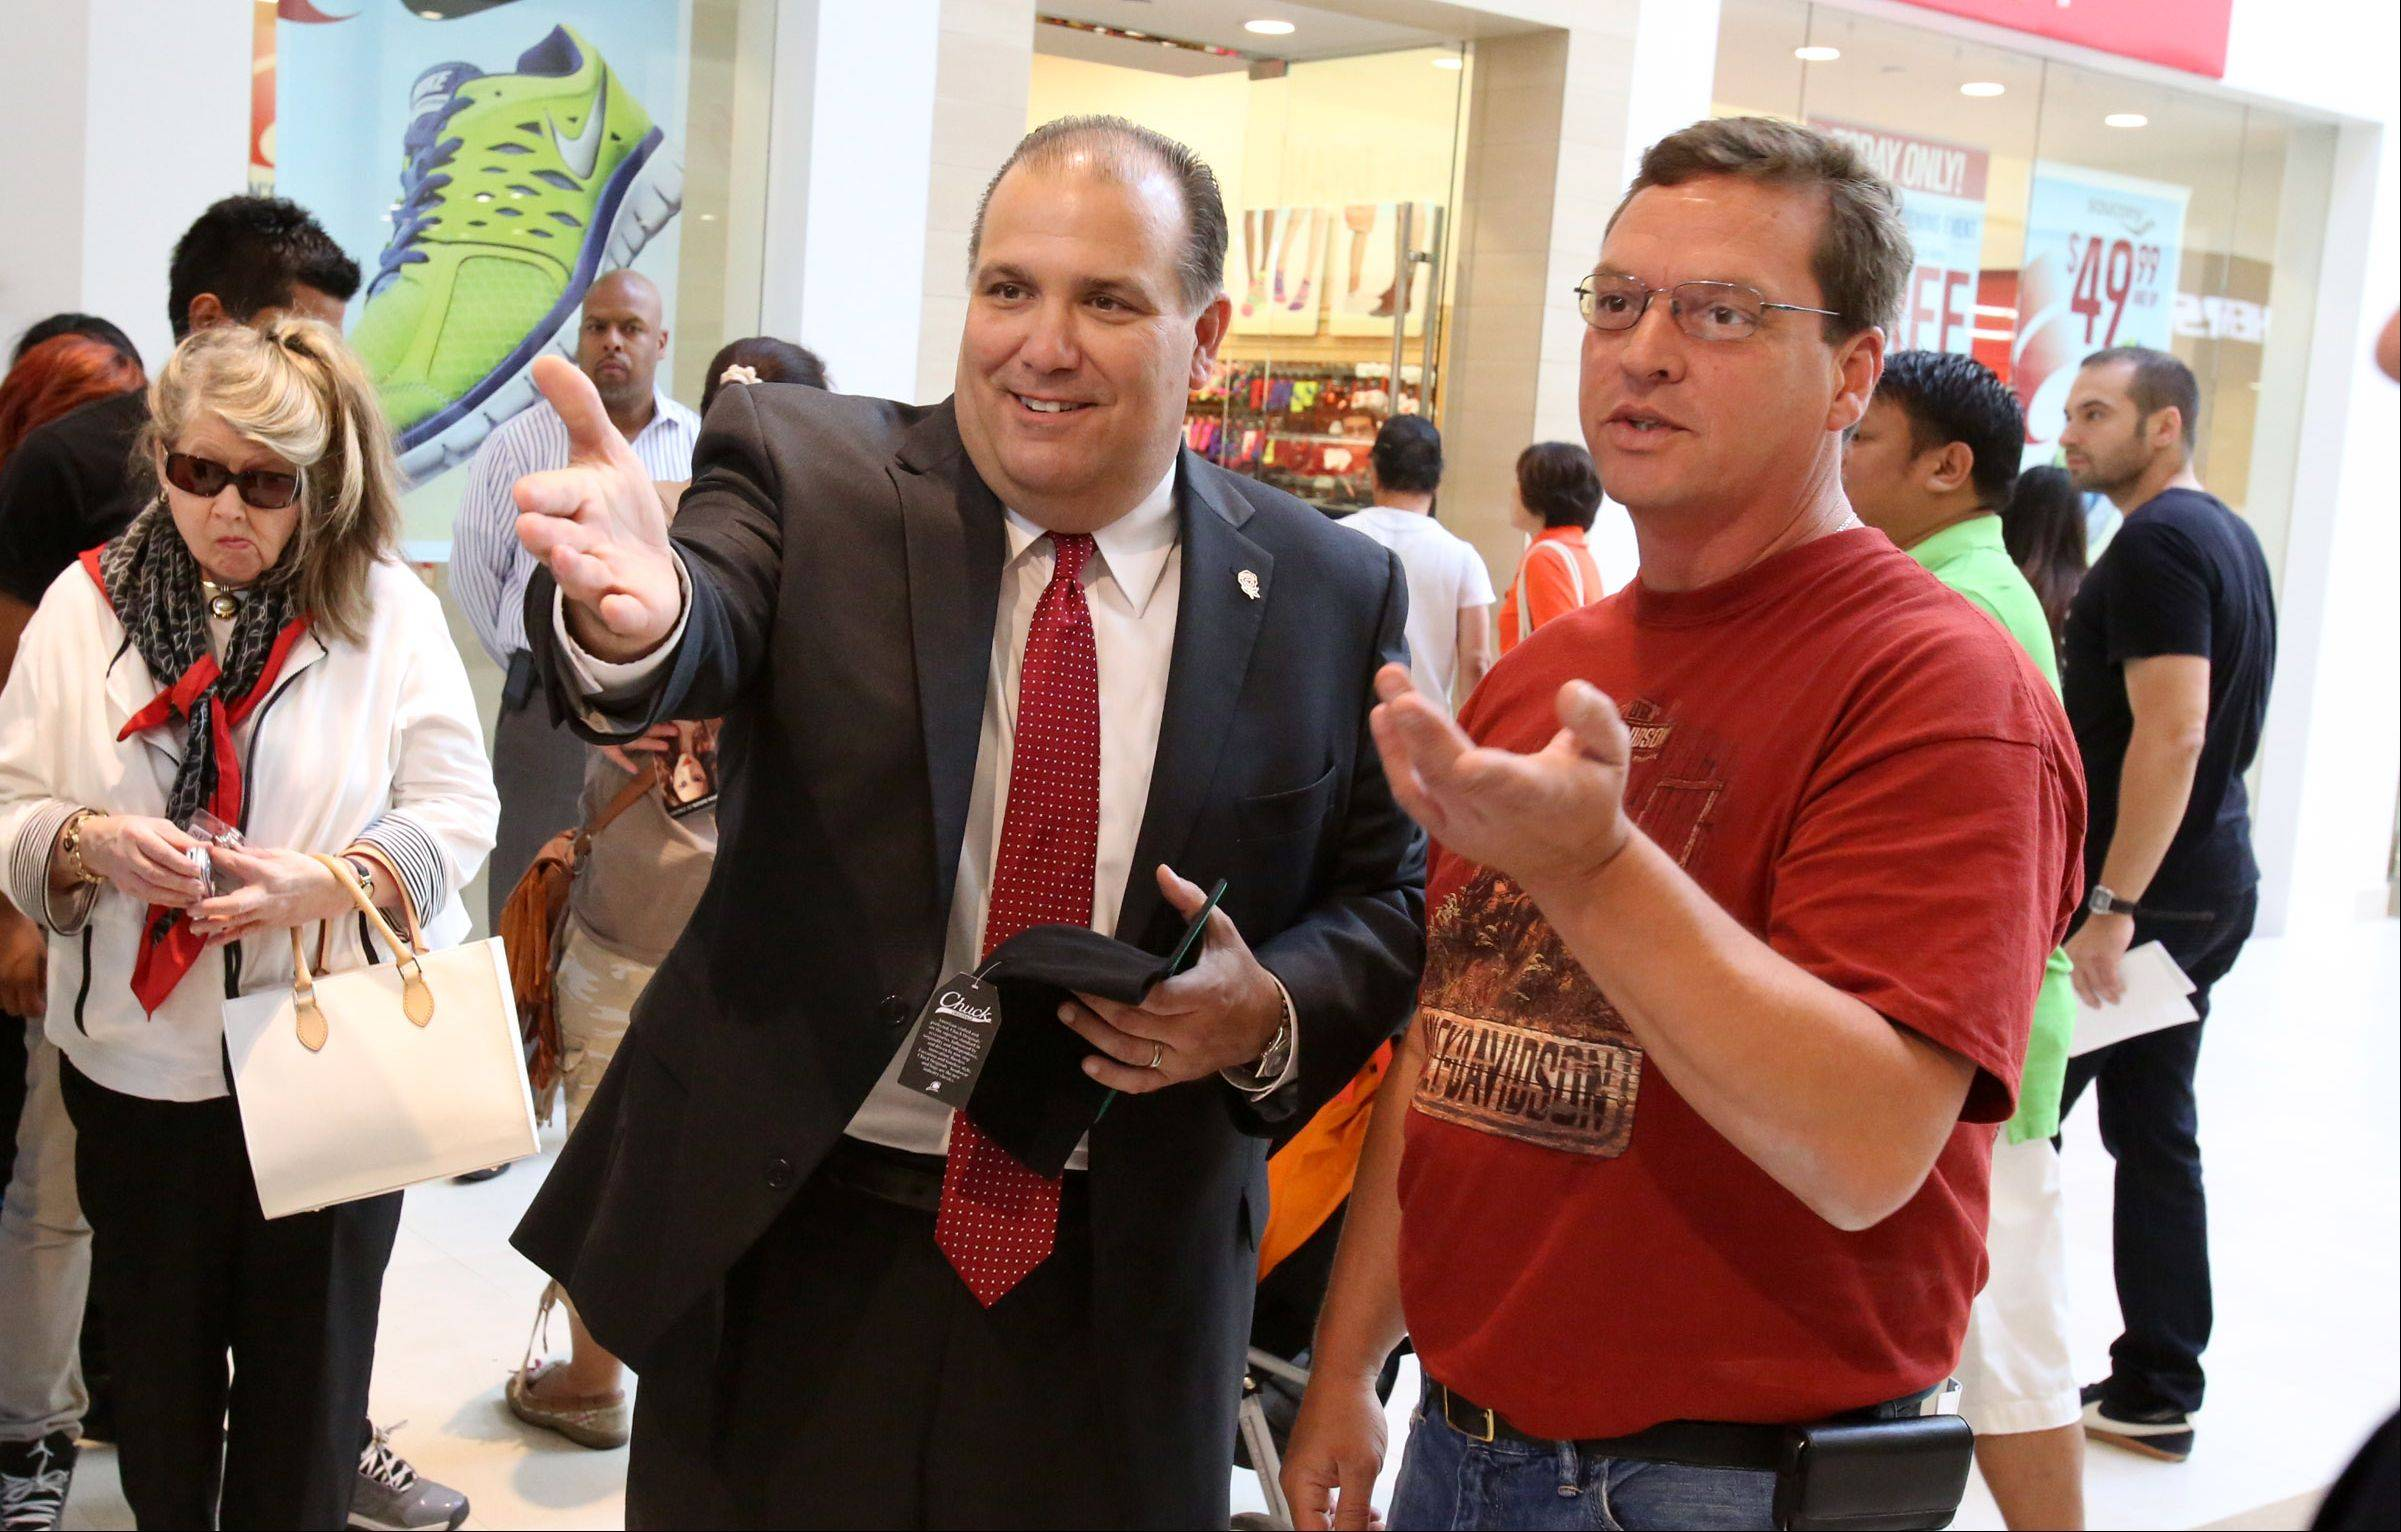 Rosemont Mayor Bradley Stephens, center, greets shoppers at the Fashion Outlets of Chicago during its opening earlier this month.